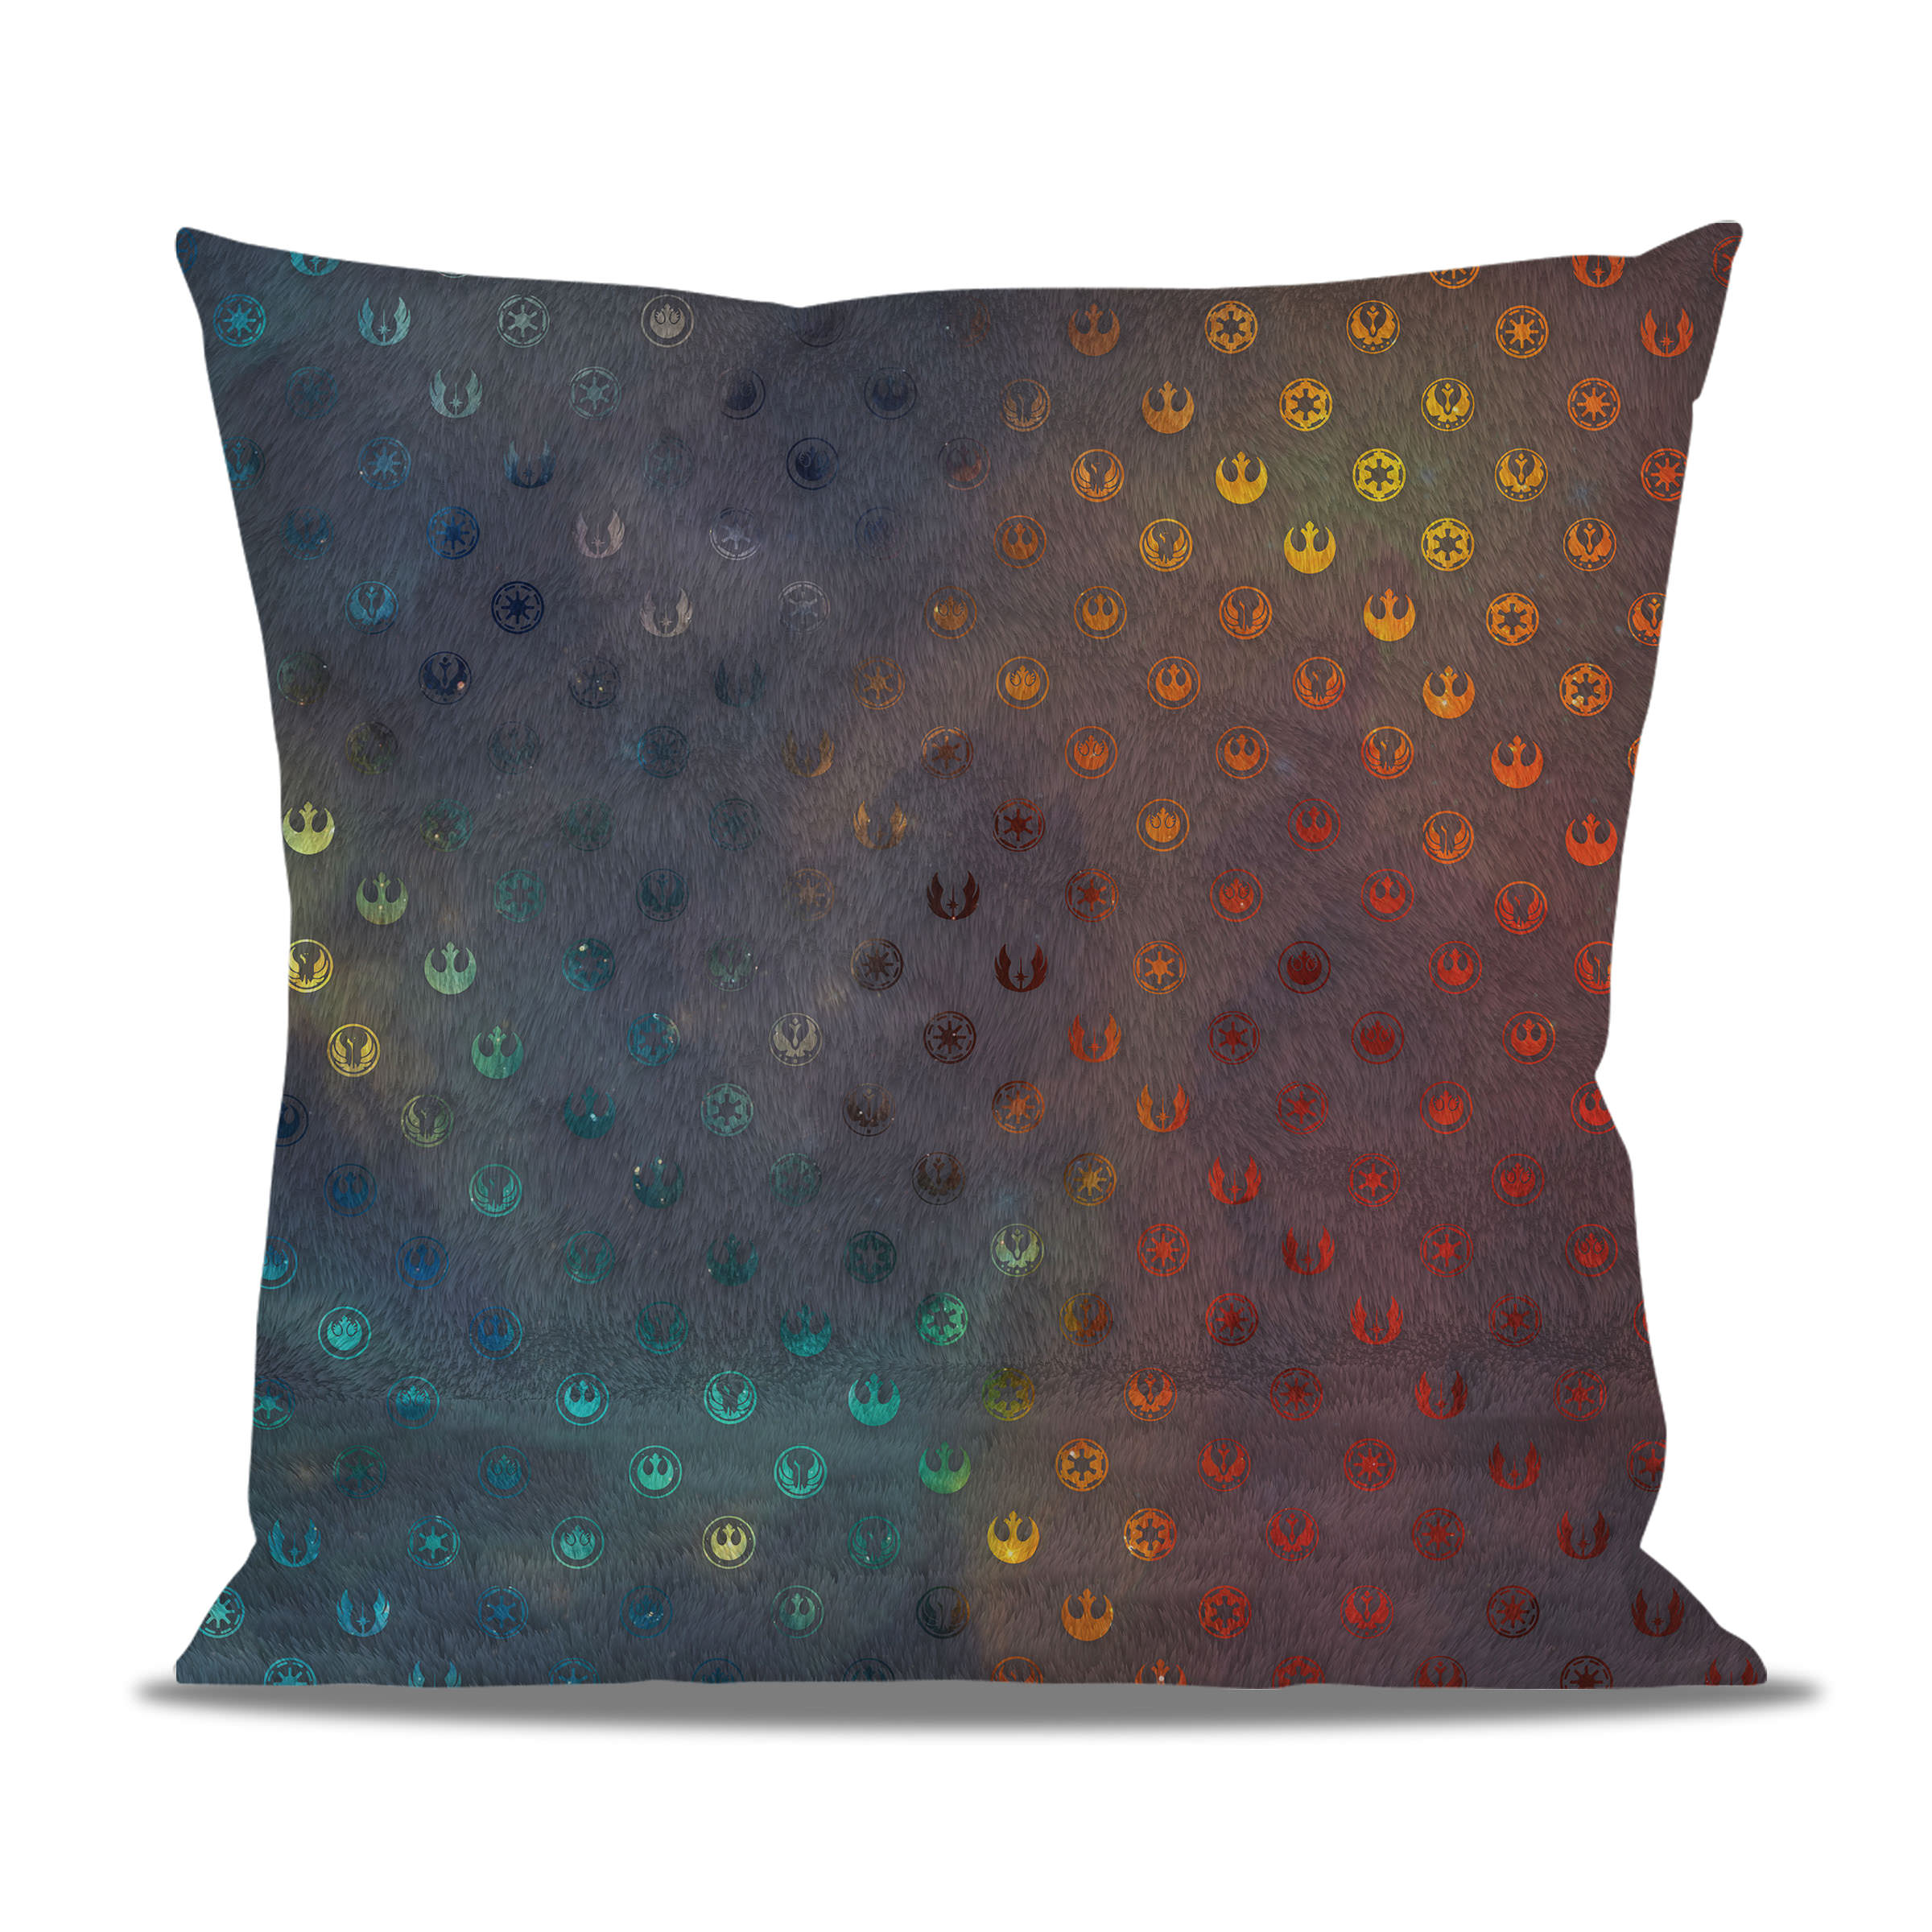 pillow the happy covers thehappyhousie pillows crazy case piece one super fast envelope easy housie ten minute square at